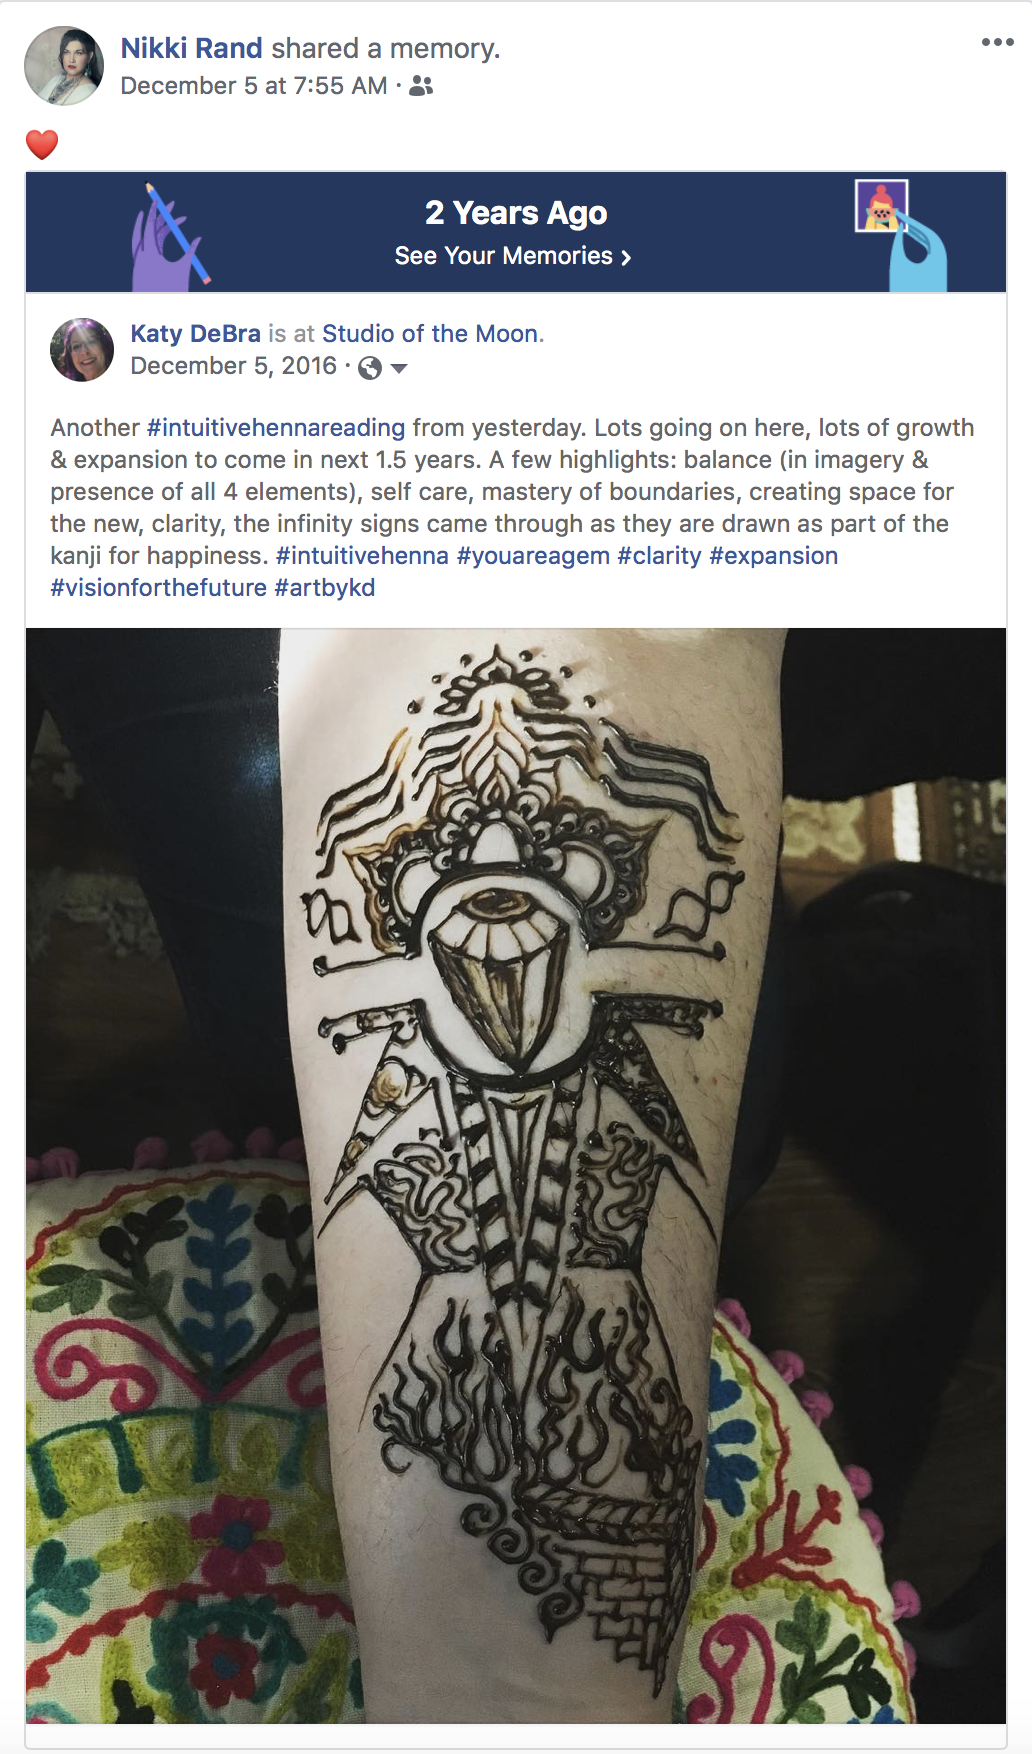 Intuitive Henna Reading - An Intuitive Henna Reading for Nikki Rand, now priestess and Reiki practitioner, two years later. This art came through in December 2016, and she just reposted the memory here in December 2018. Clearly, she is a gem.